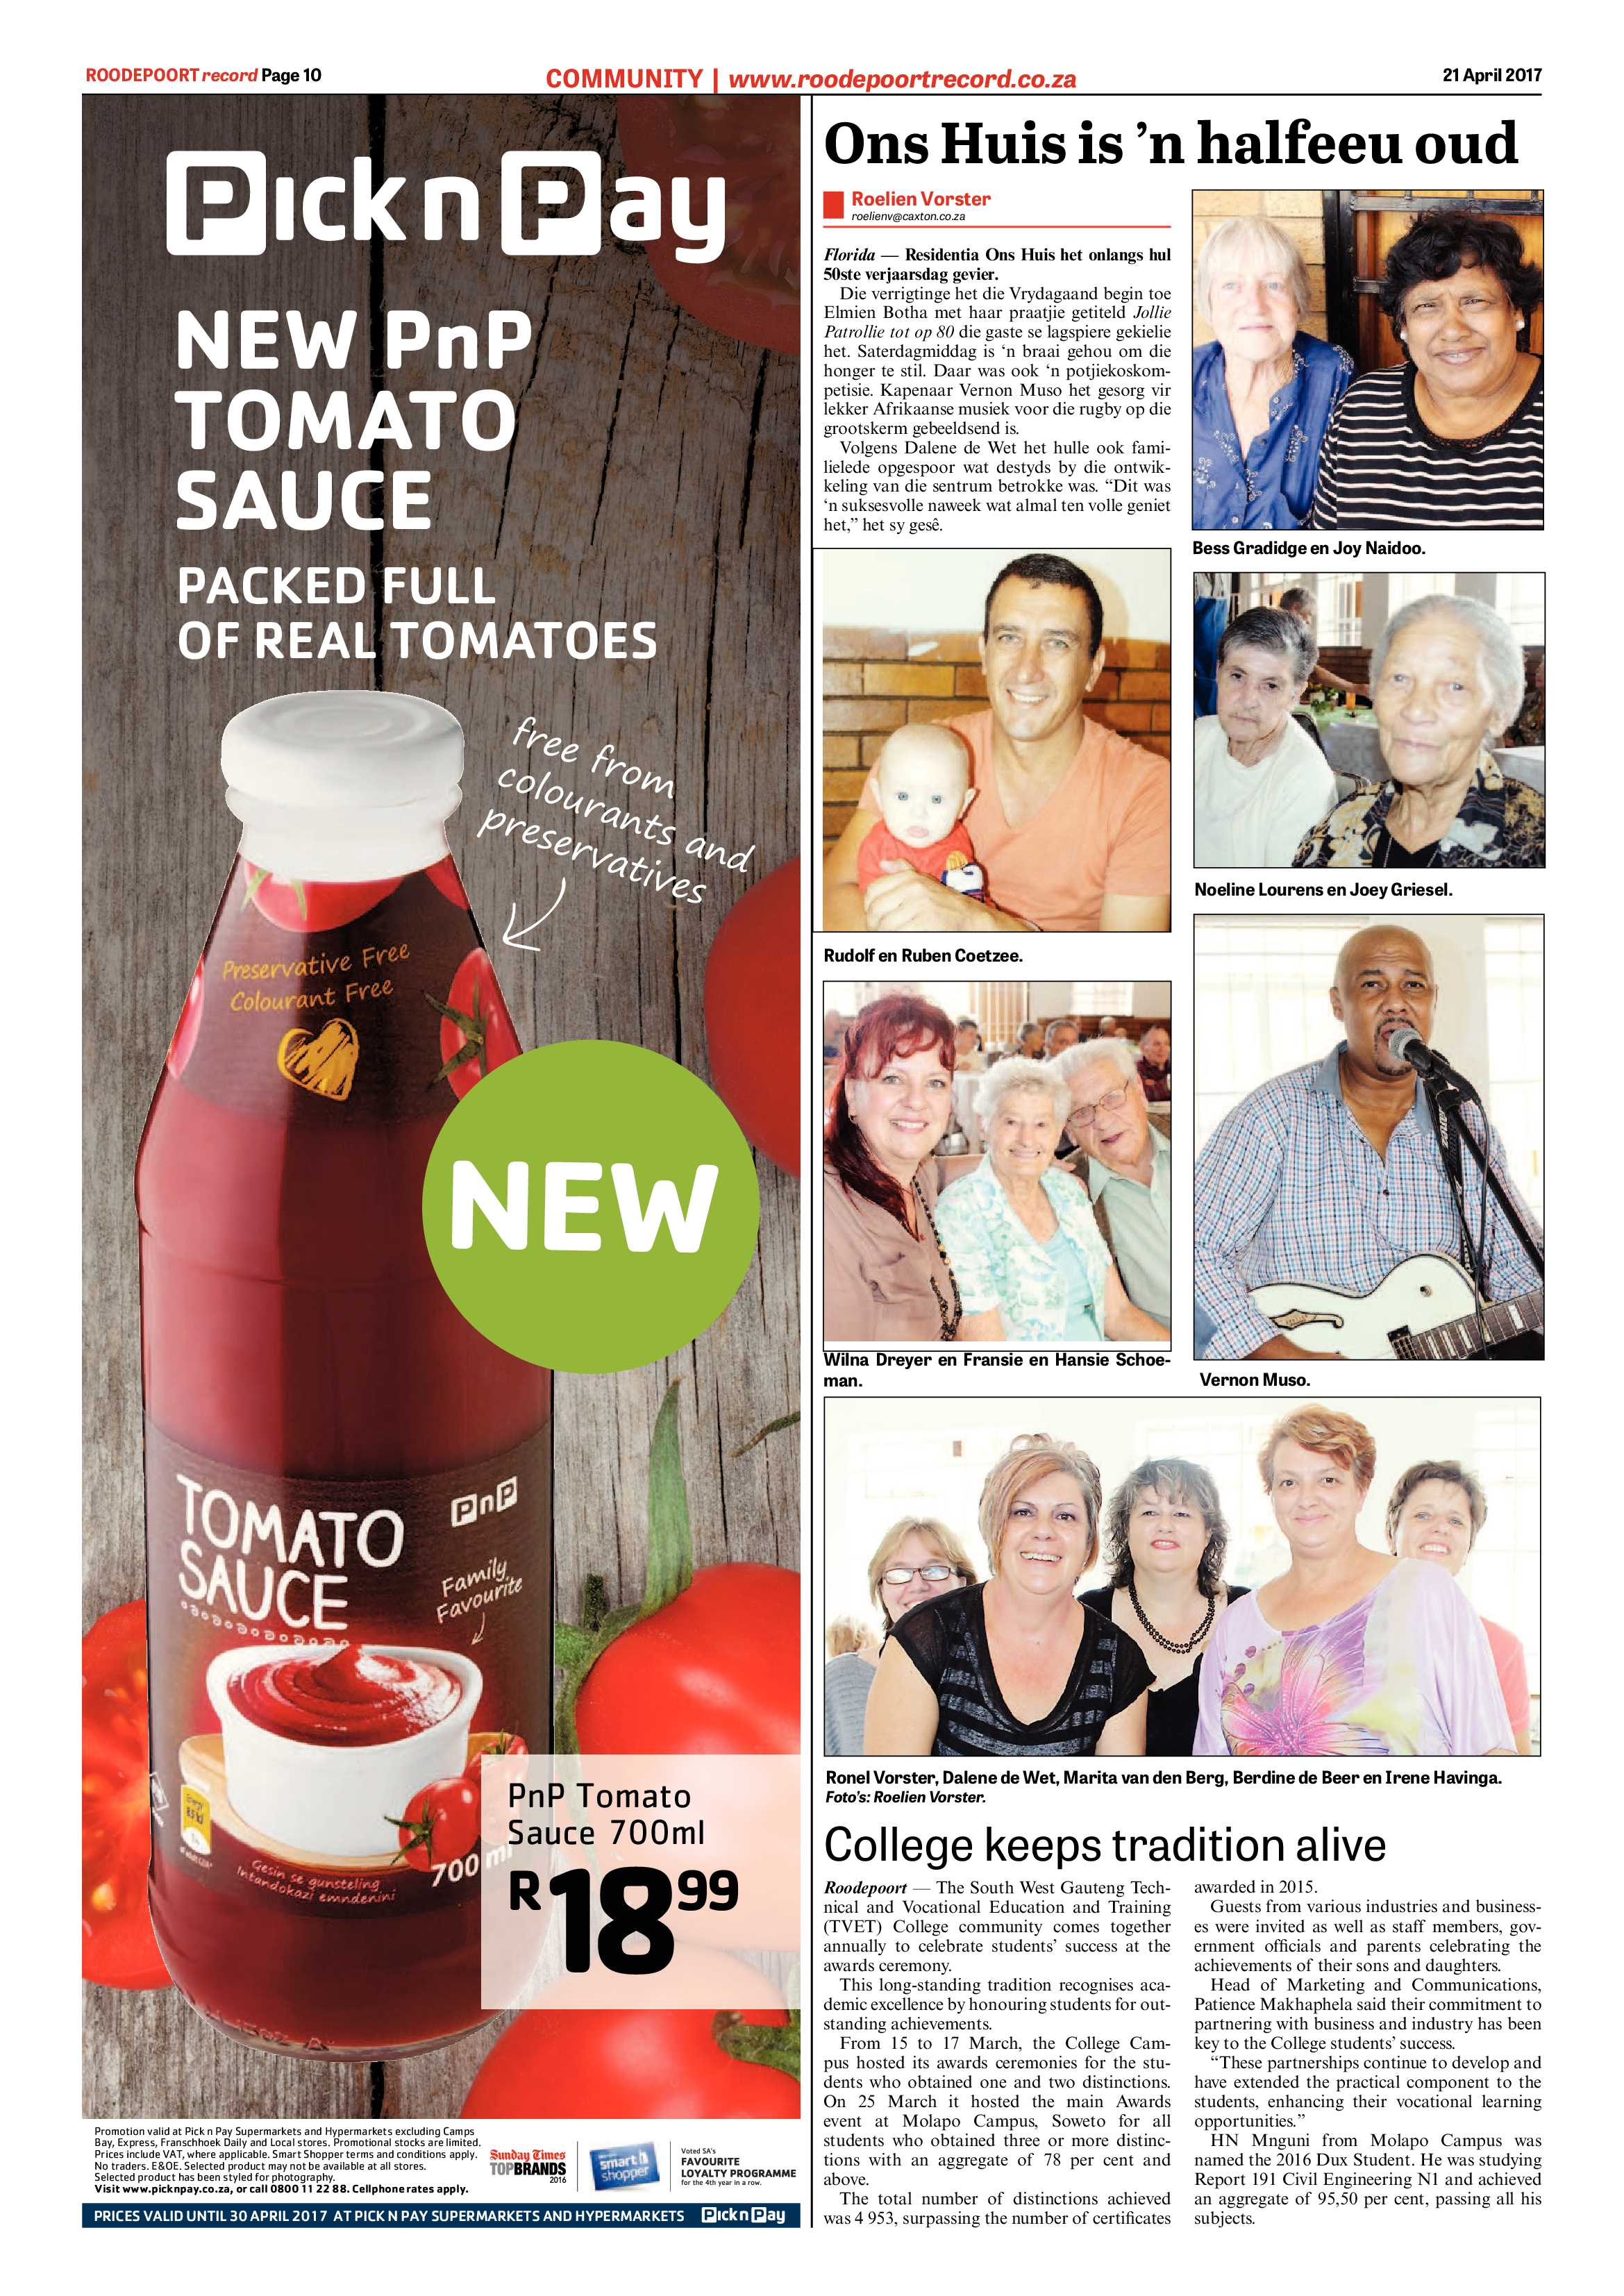 roodepoort-record-21-april-2017-epapers-page-10